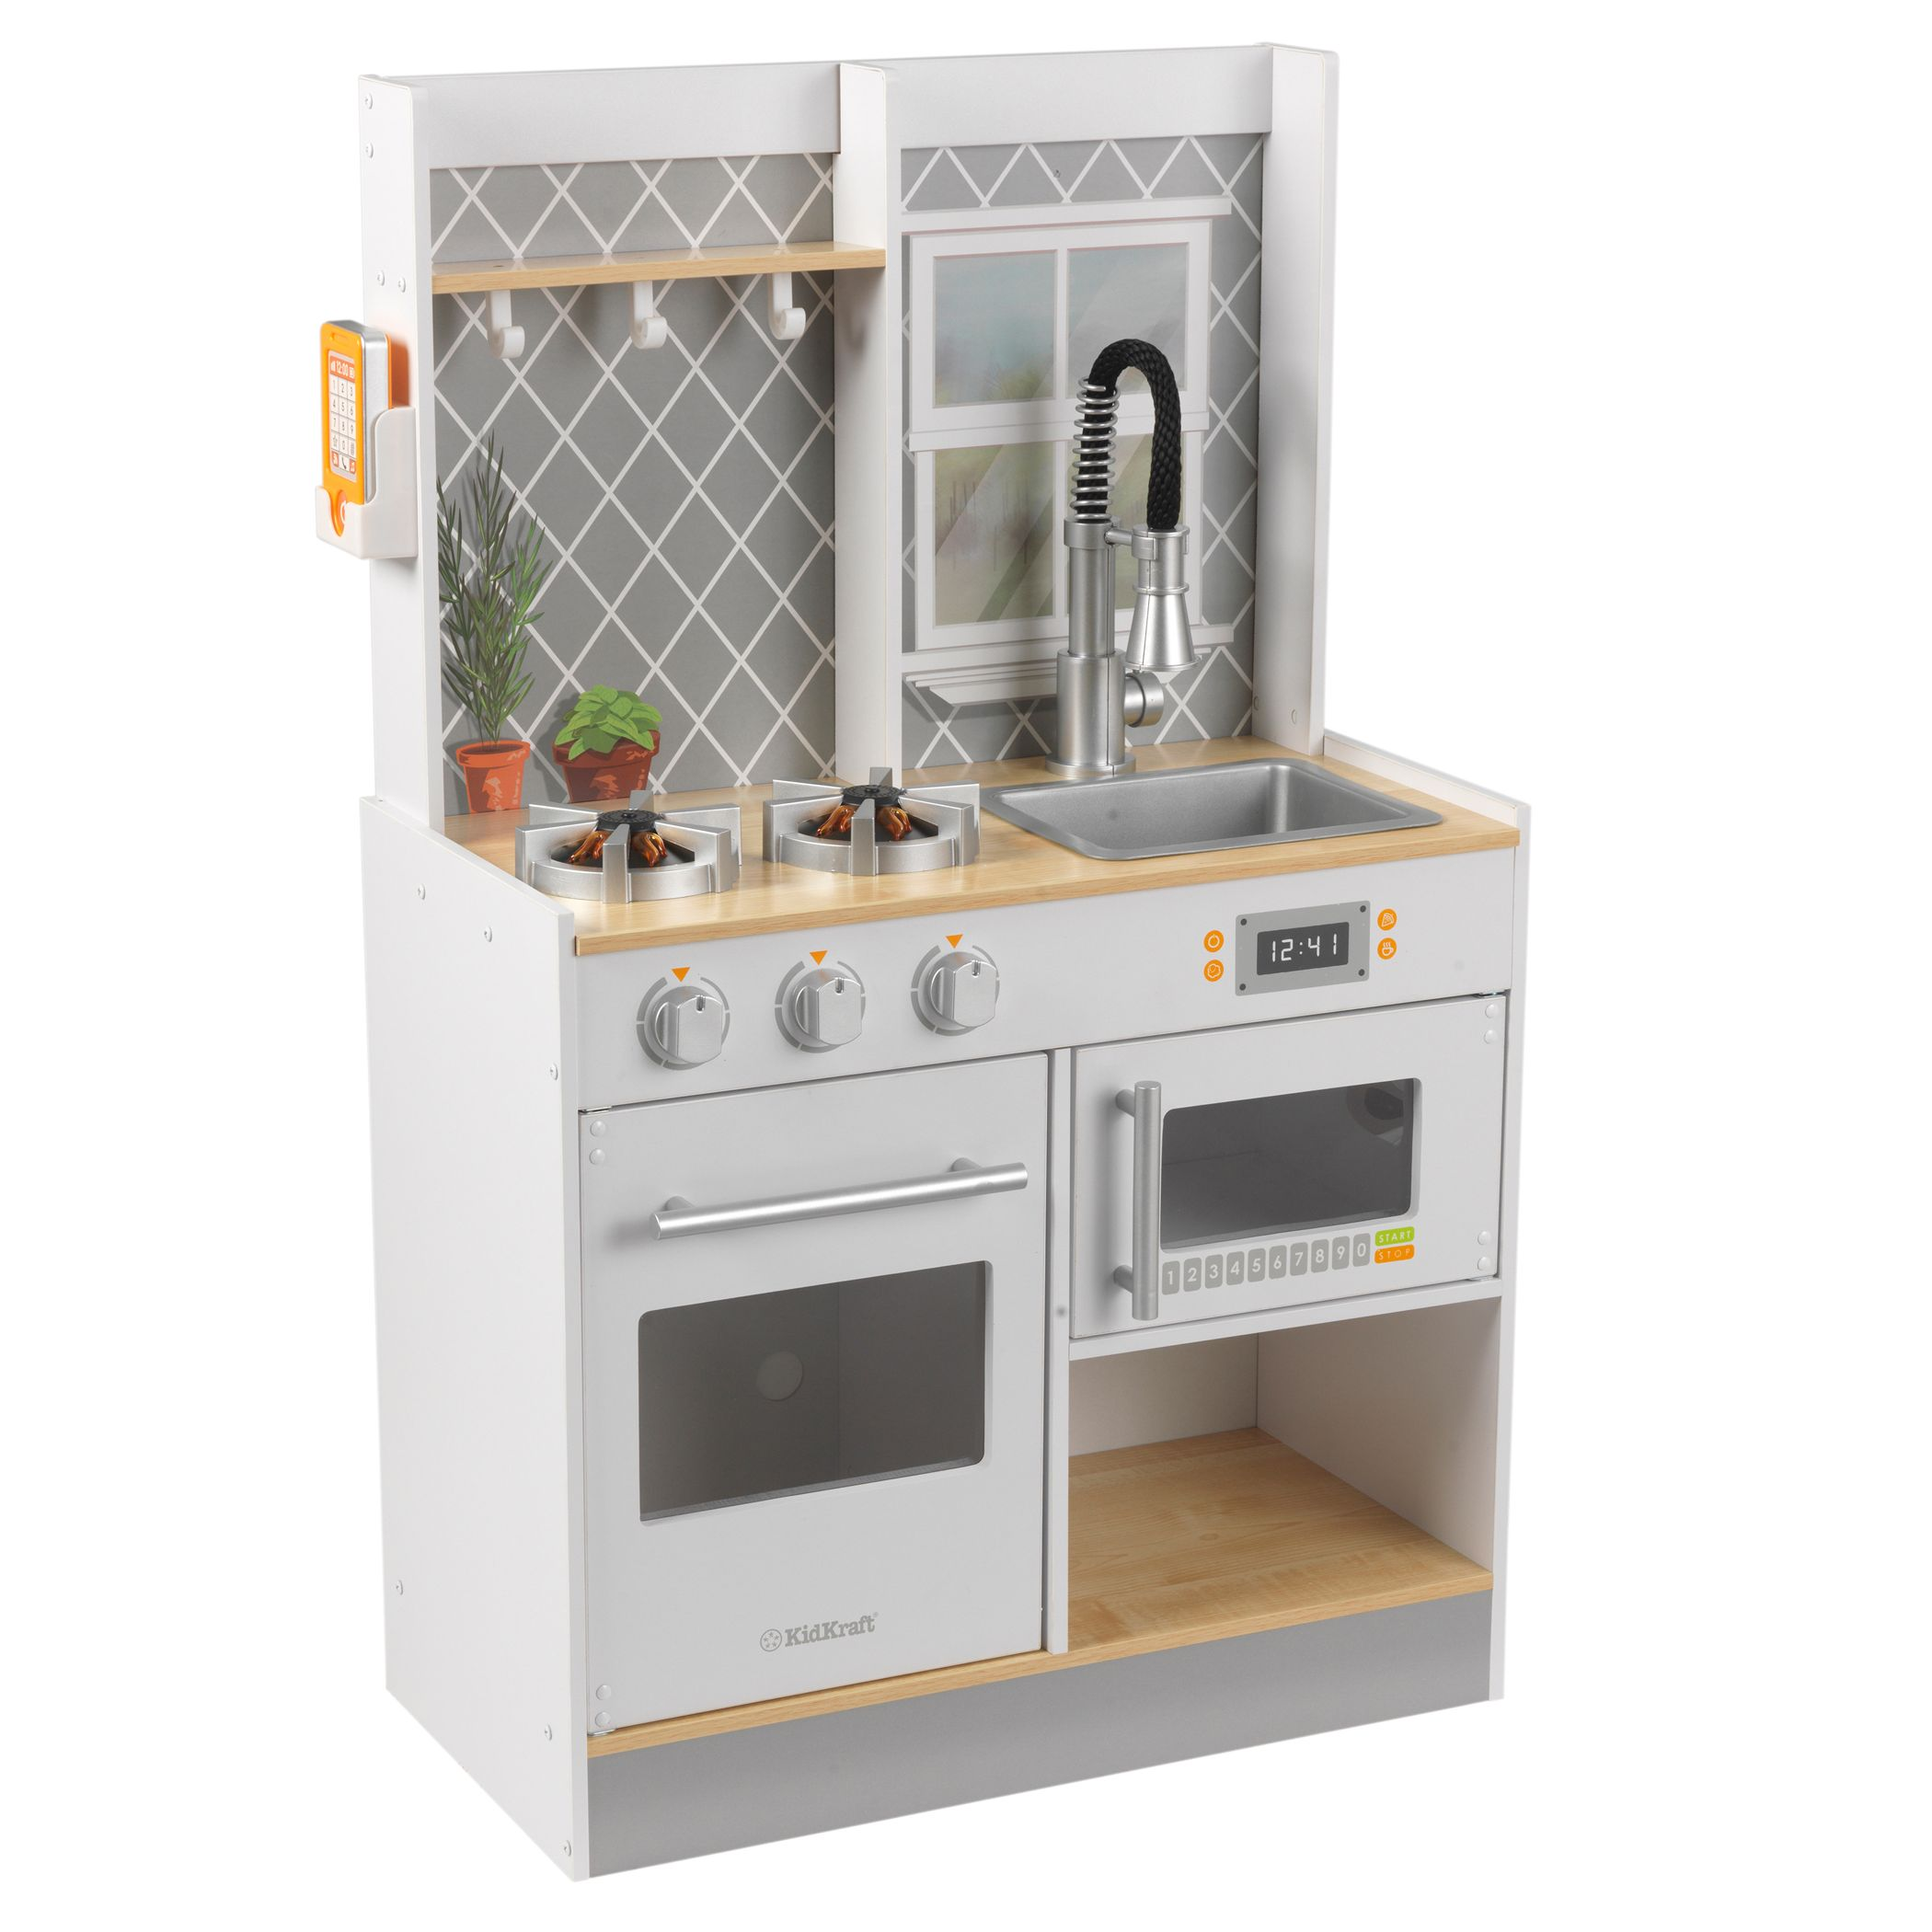 kidkraft let s cook wooden play kitchen null rh m kohls com kidkraft wooden play kitchen set with stools kidkraft wooden play kitchen set with stools